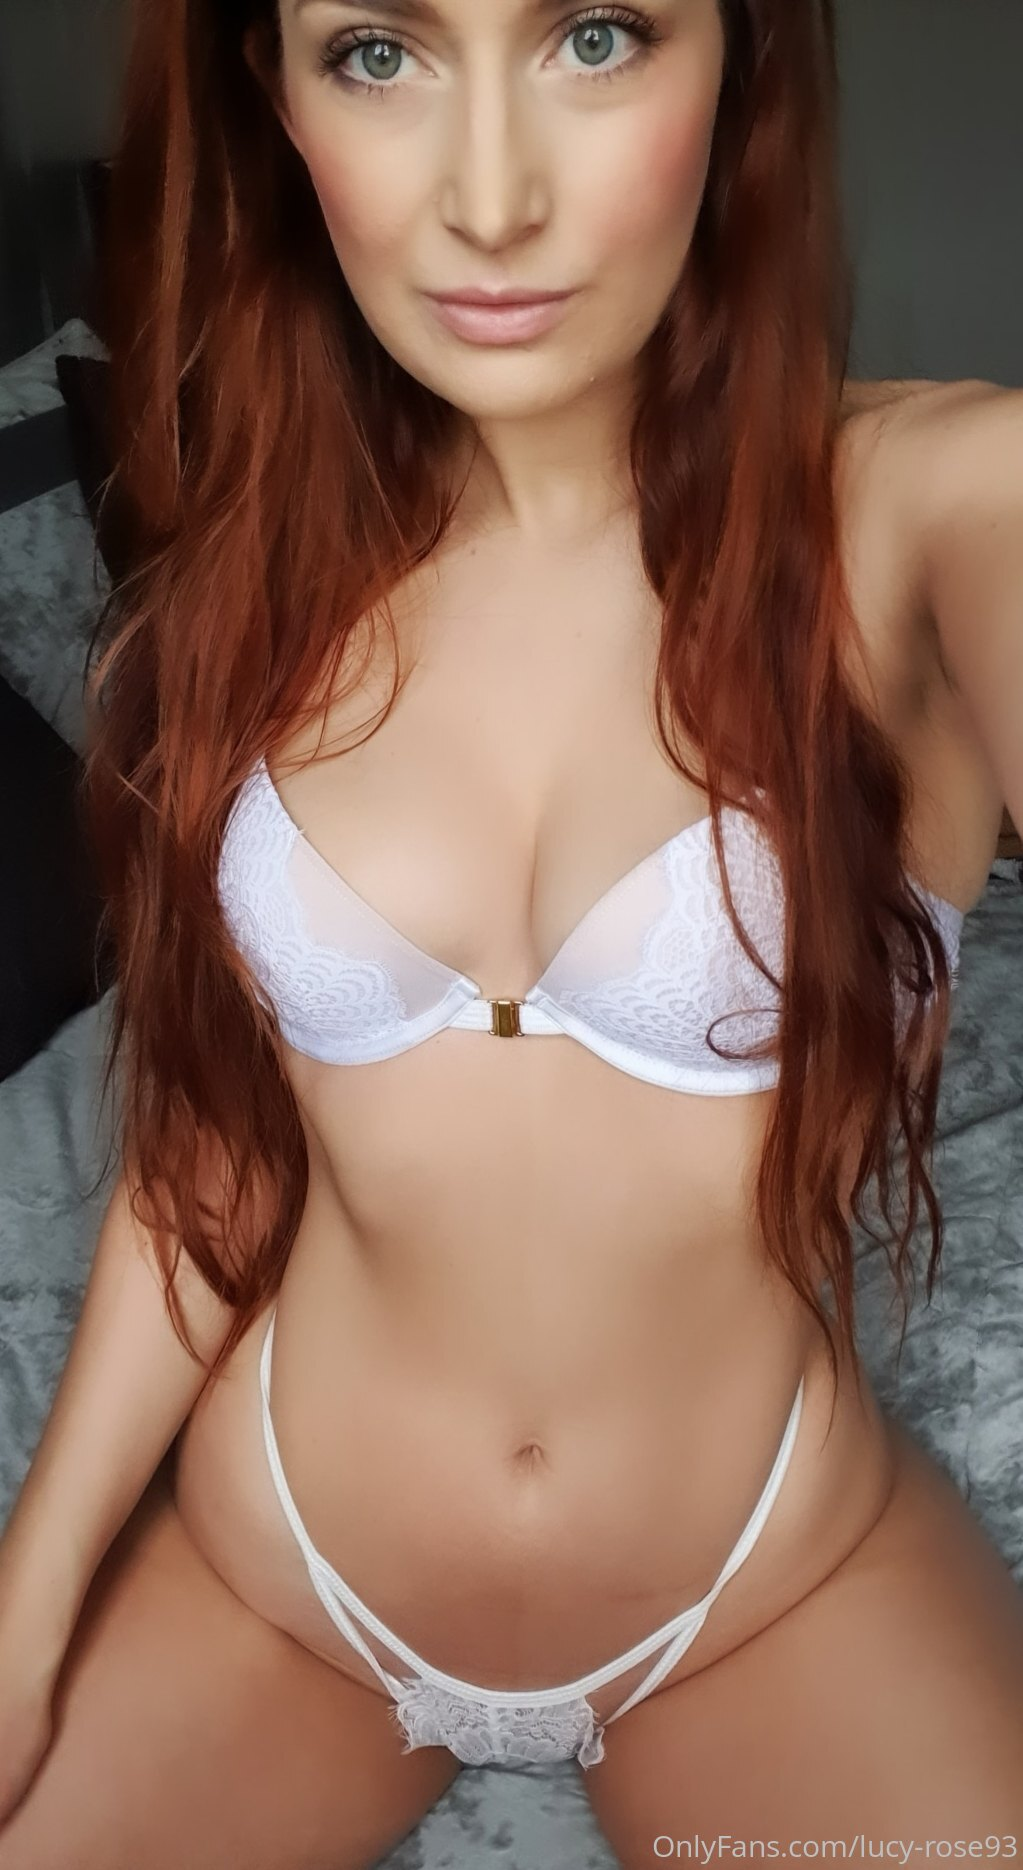 Lucy Rose, Lucy Rose93, Onlyfans 0156